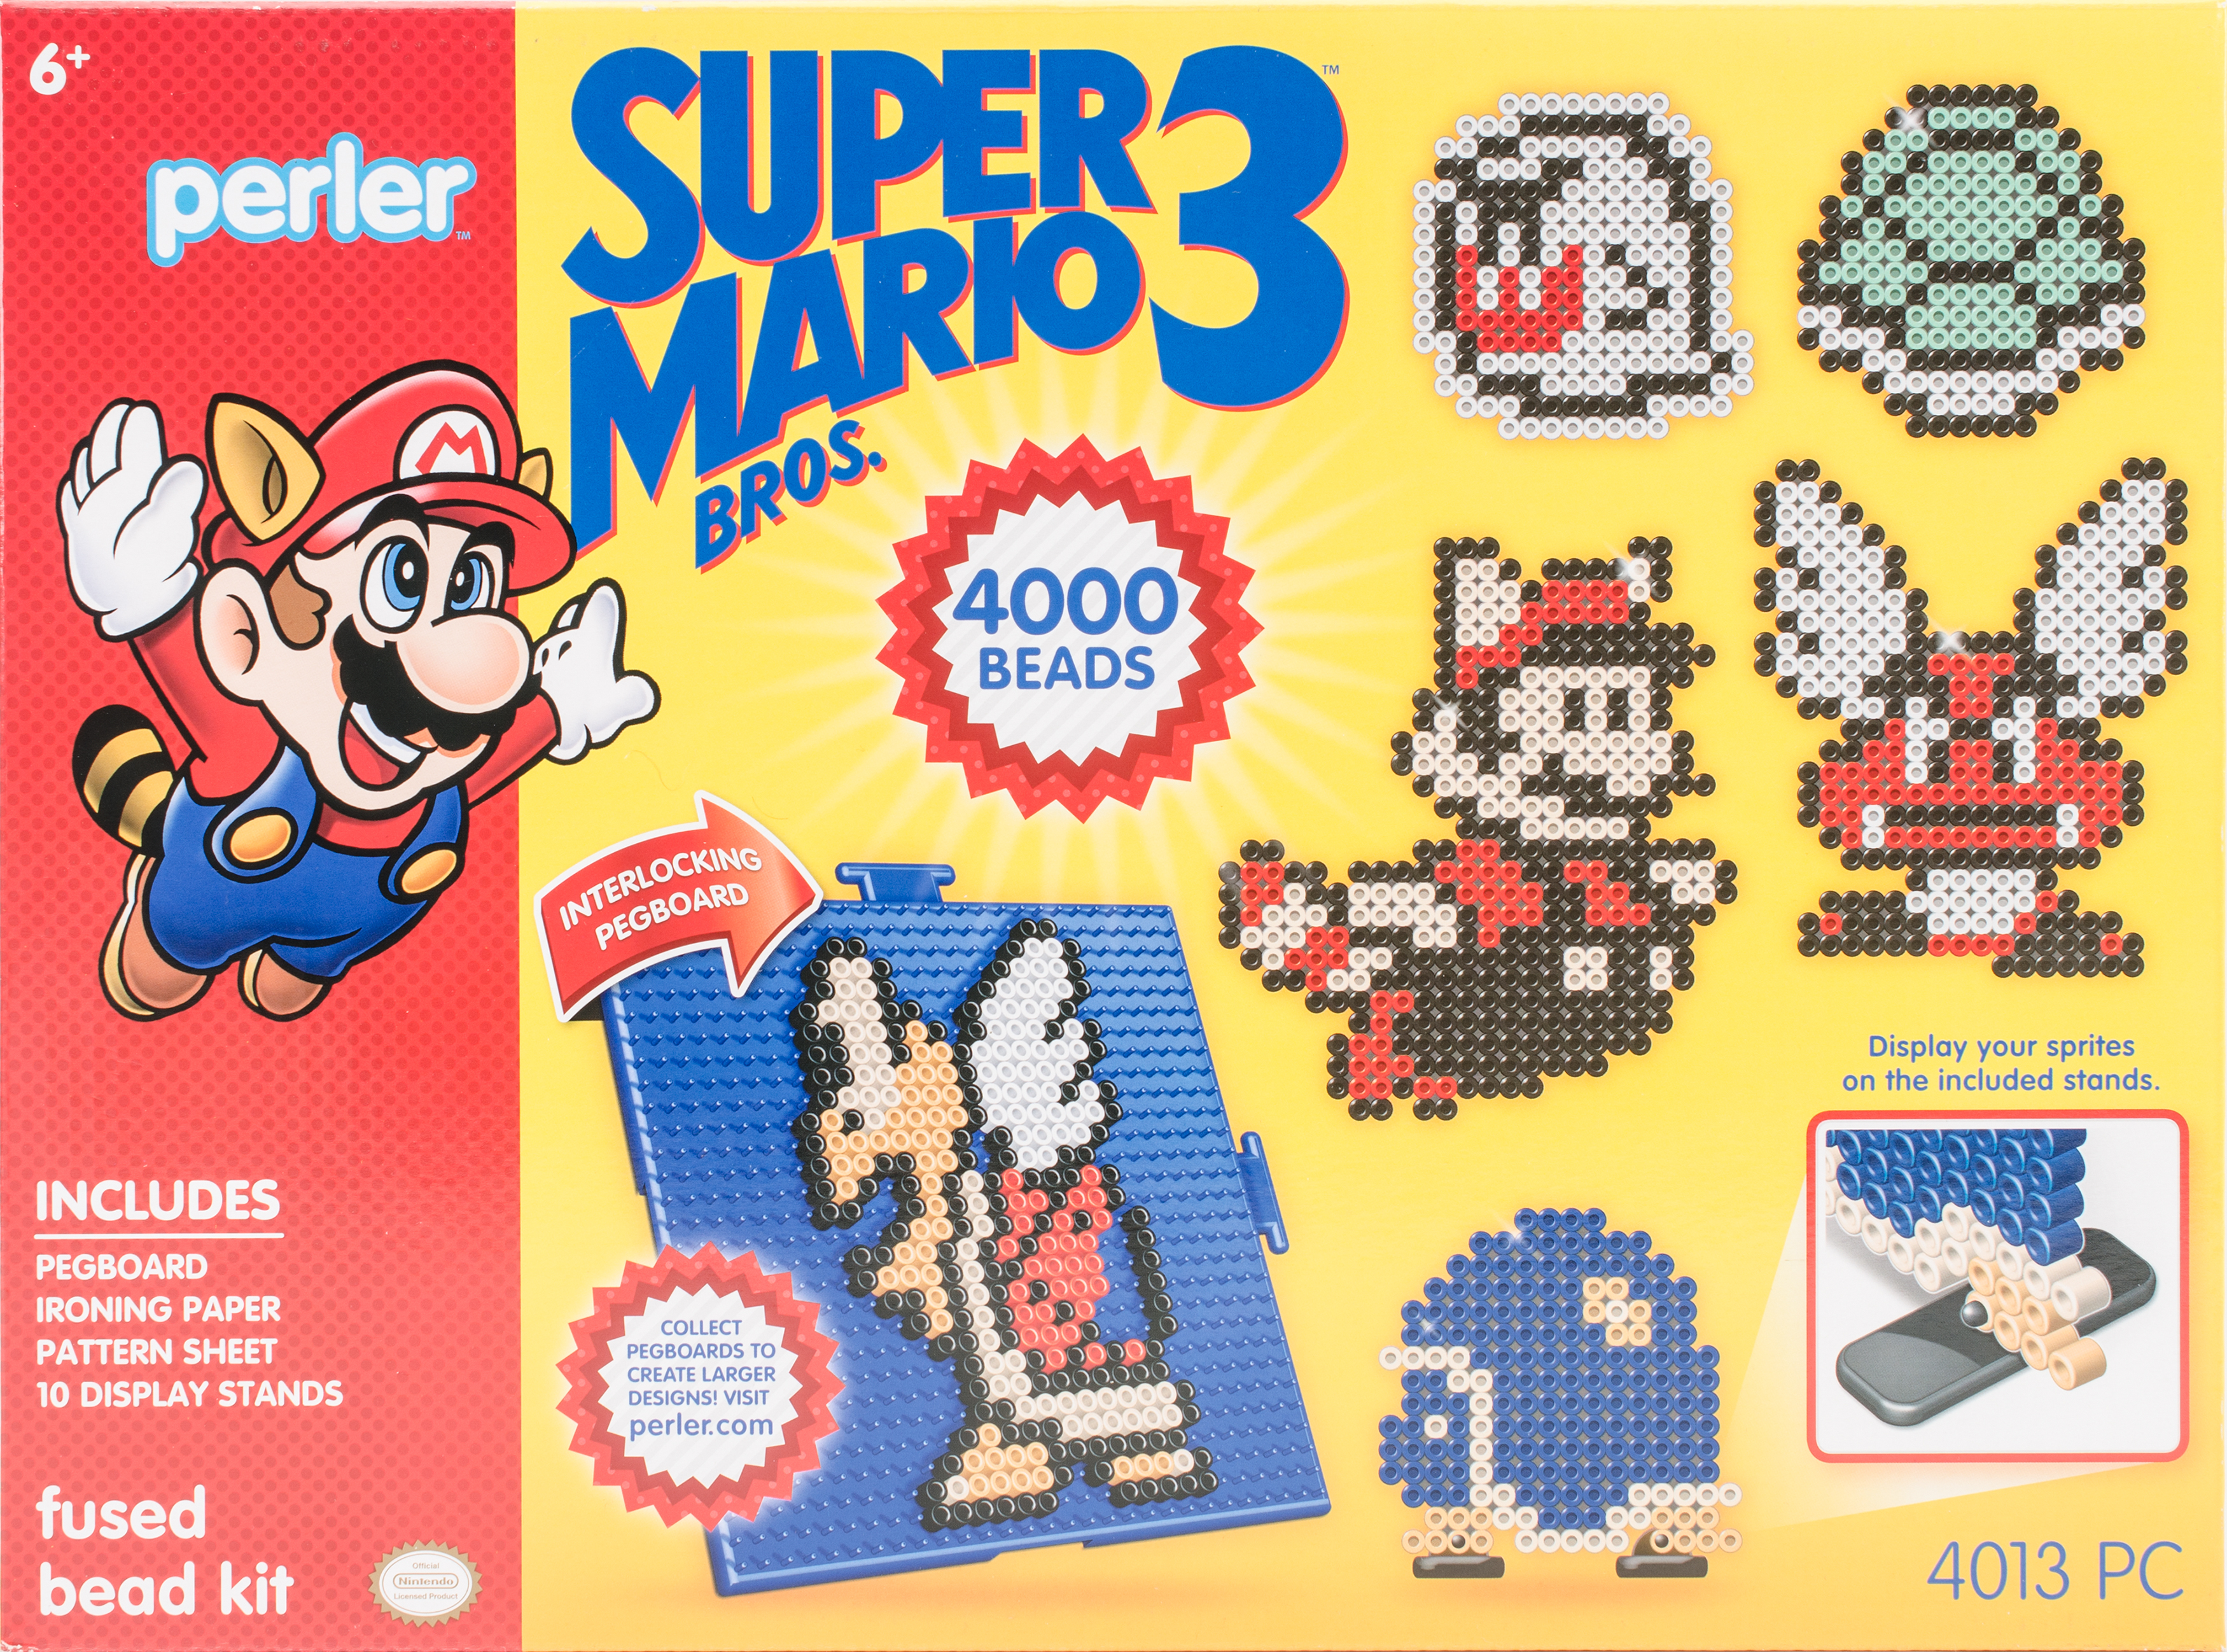 Perler Deluxe Fused Bead Kit-Super Mario Bros. 3